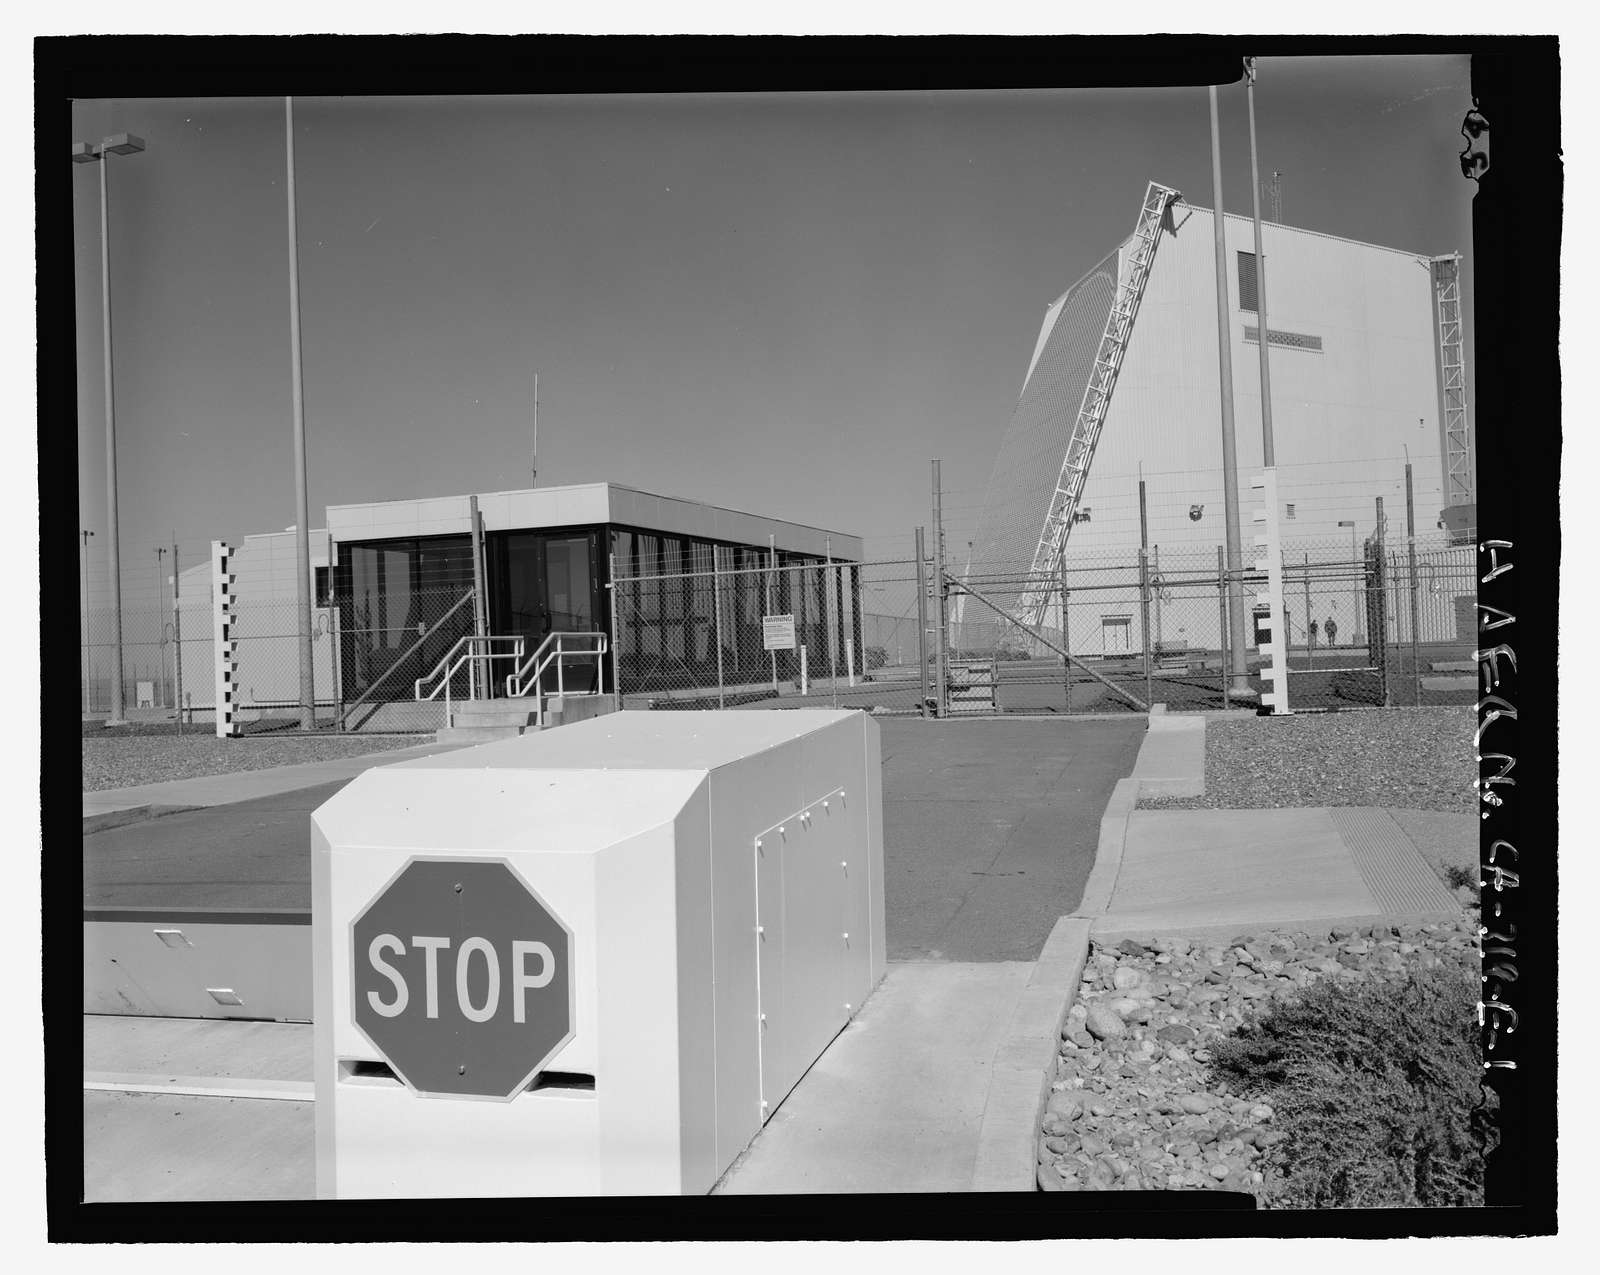 Beale Air Force Base, Perimeter Acquisition Vehicle Entry Phased-Array Warning System, Gate House, End of Spencer Paul Road, north of Warren Shingle Road (14th Street), Marysville, Yuba County, CA